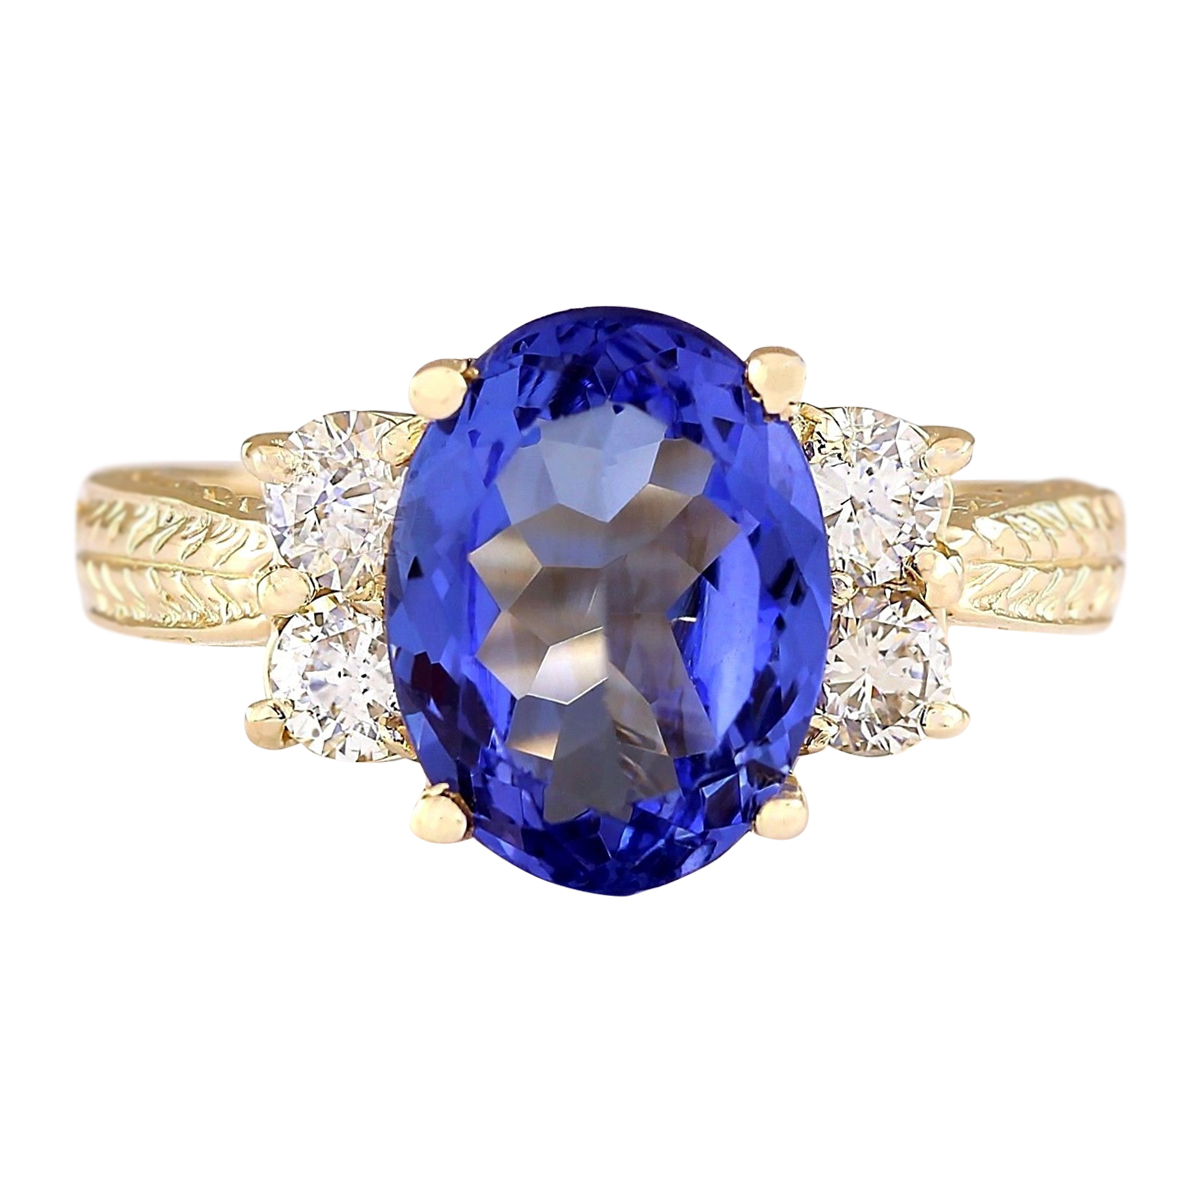 white paragon engagement rings tanzanite ring si diamond and gold product gemstone h image